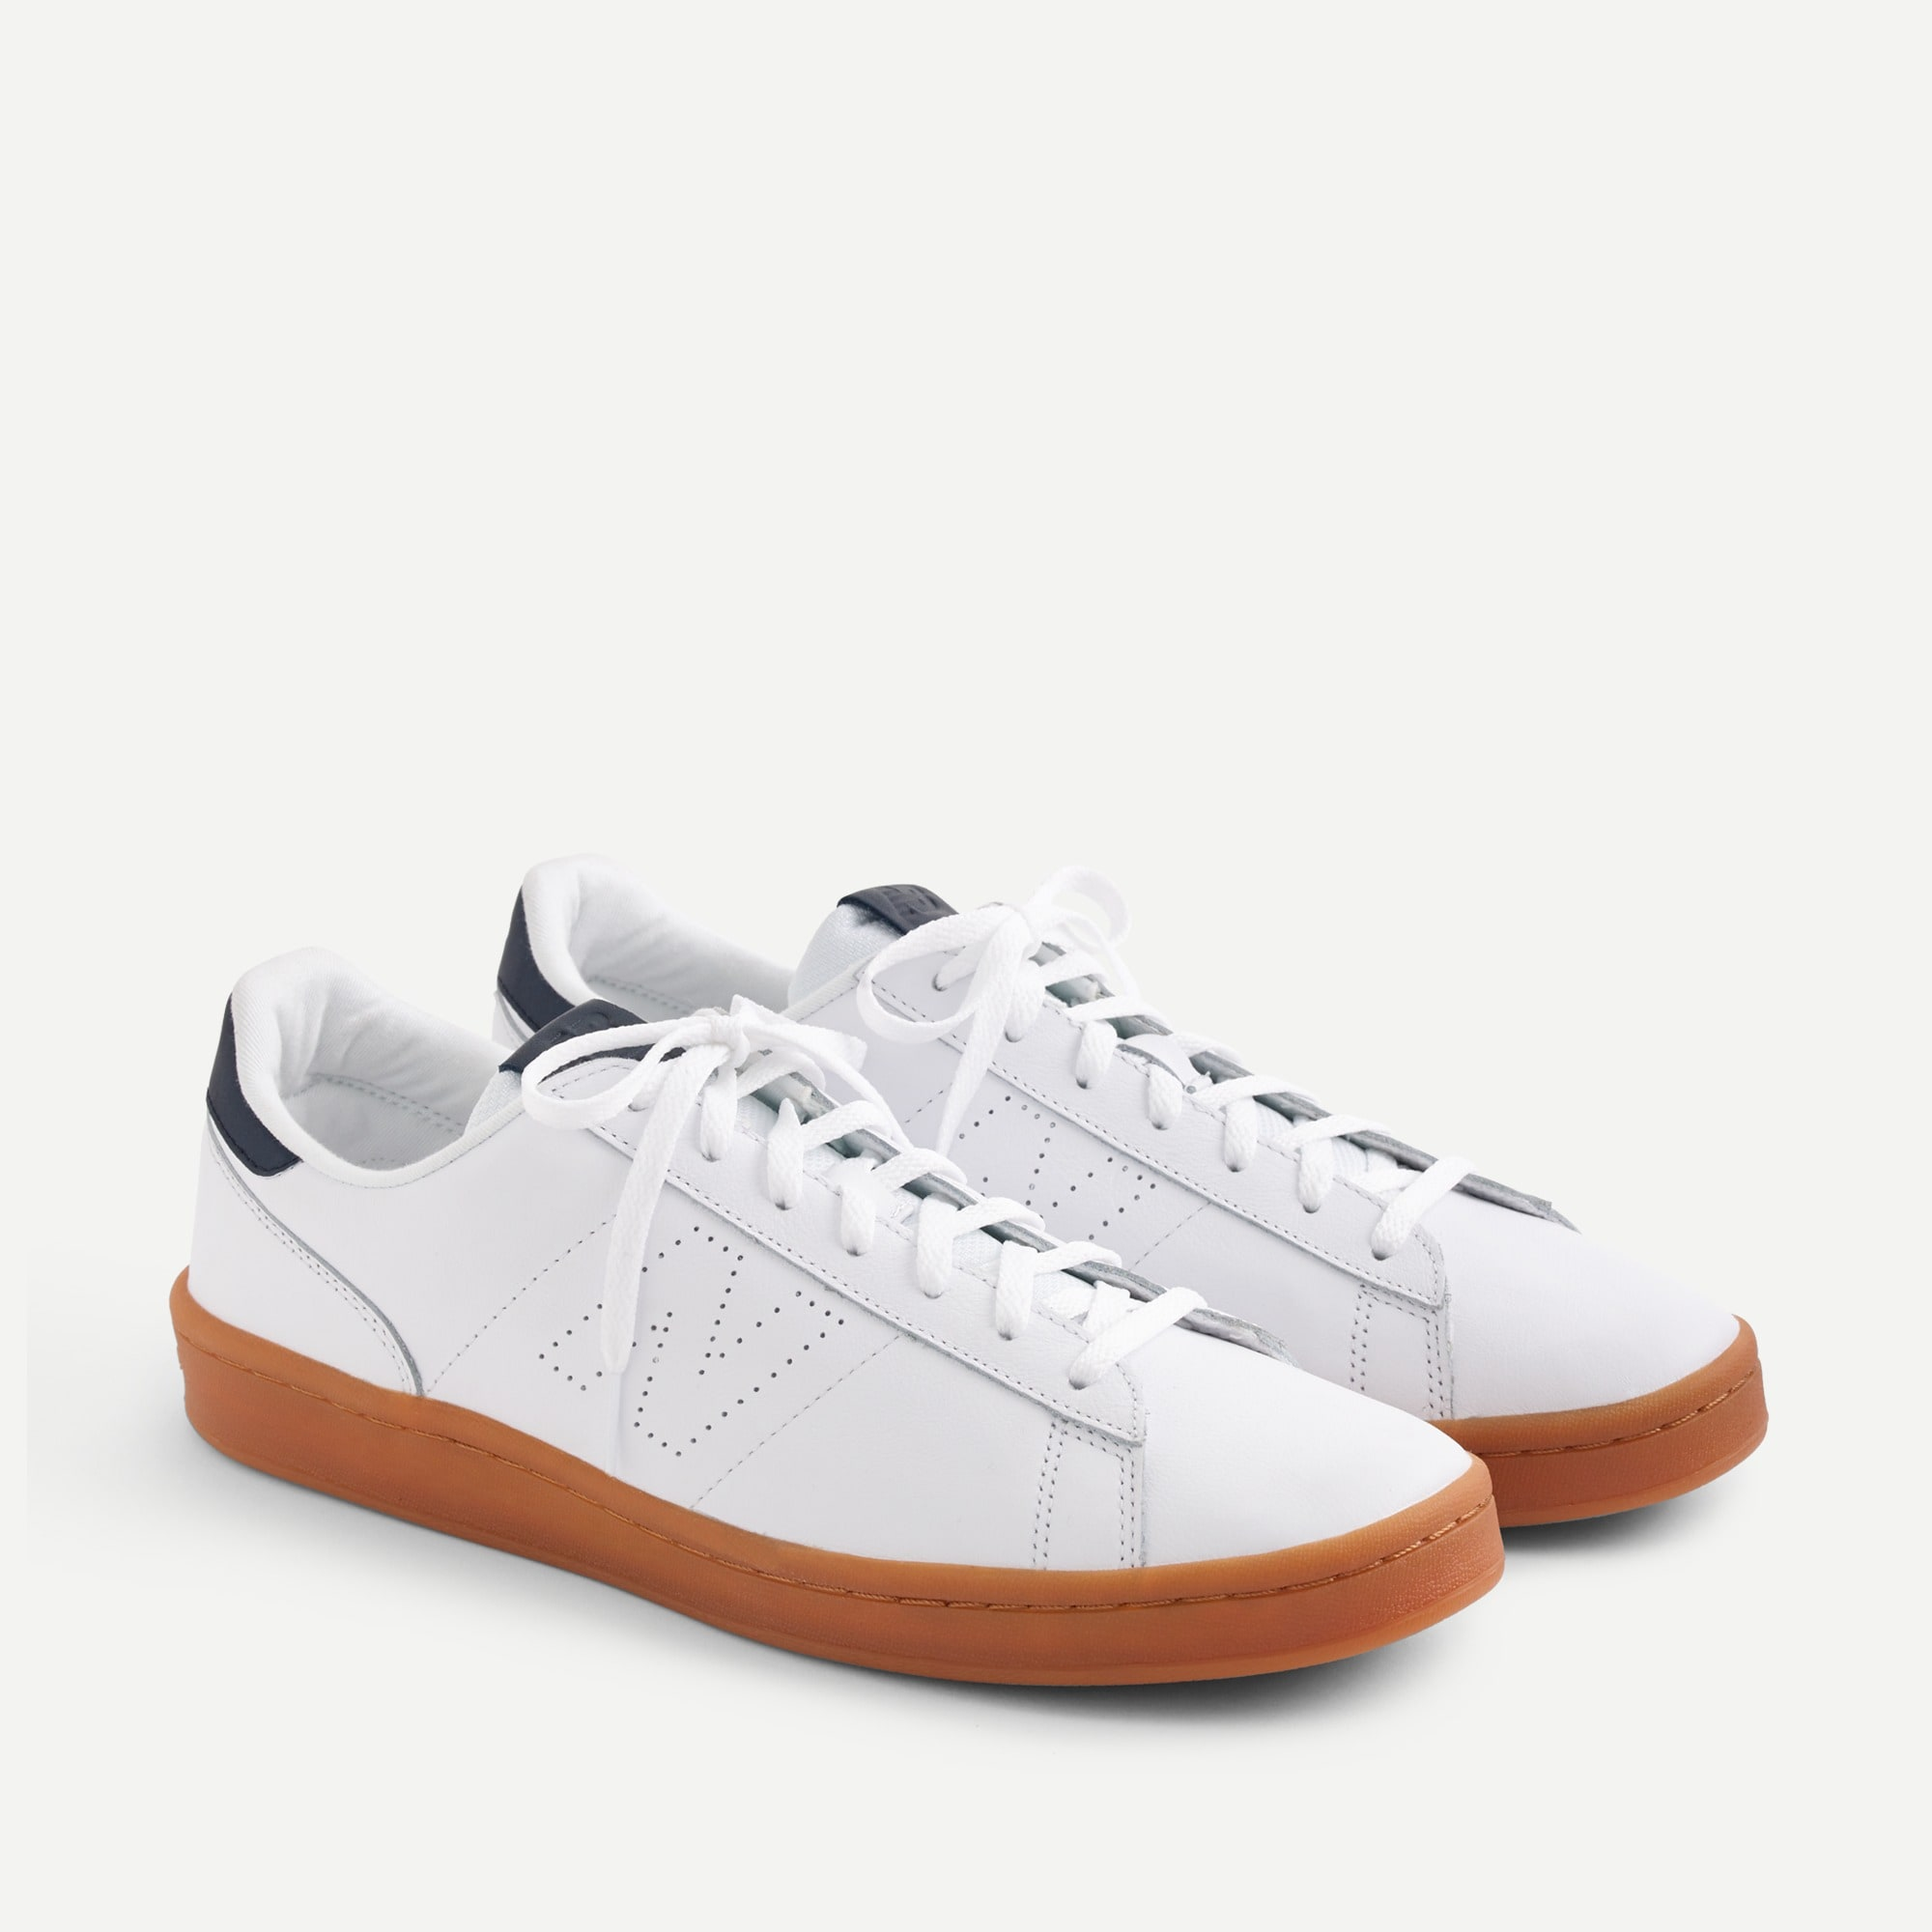 New Balance® for J.Crew 791 leather sneakers men j.crew in good company c